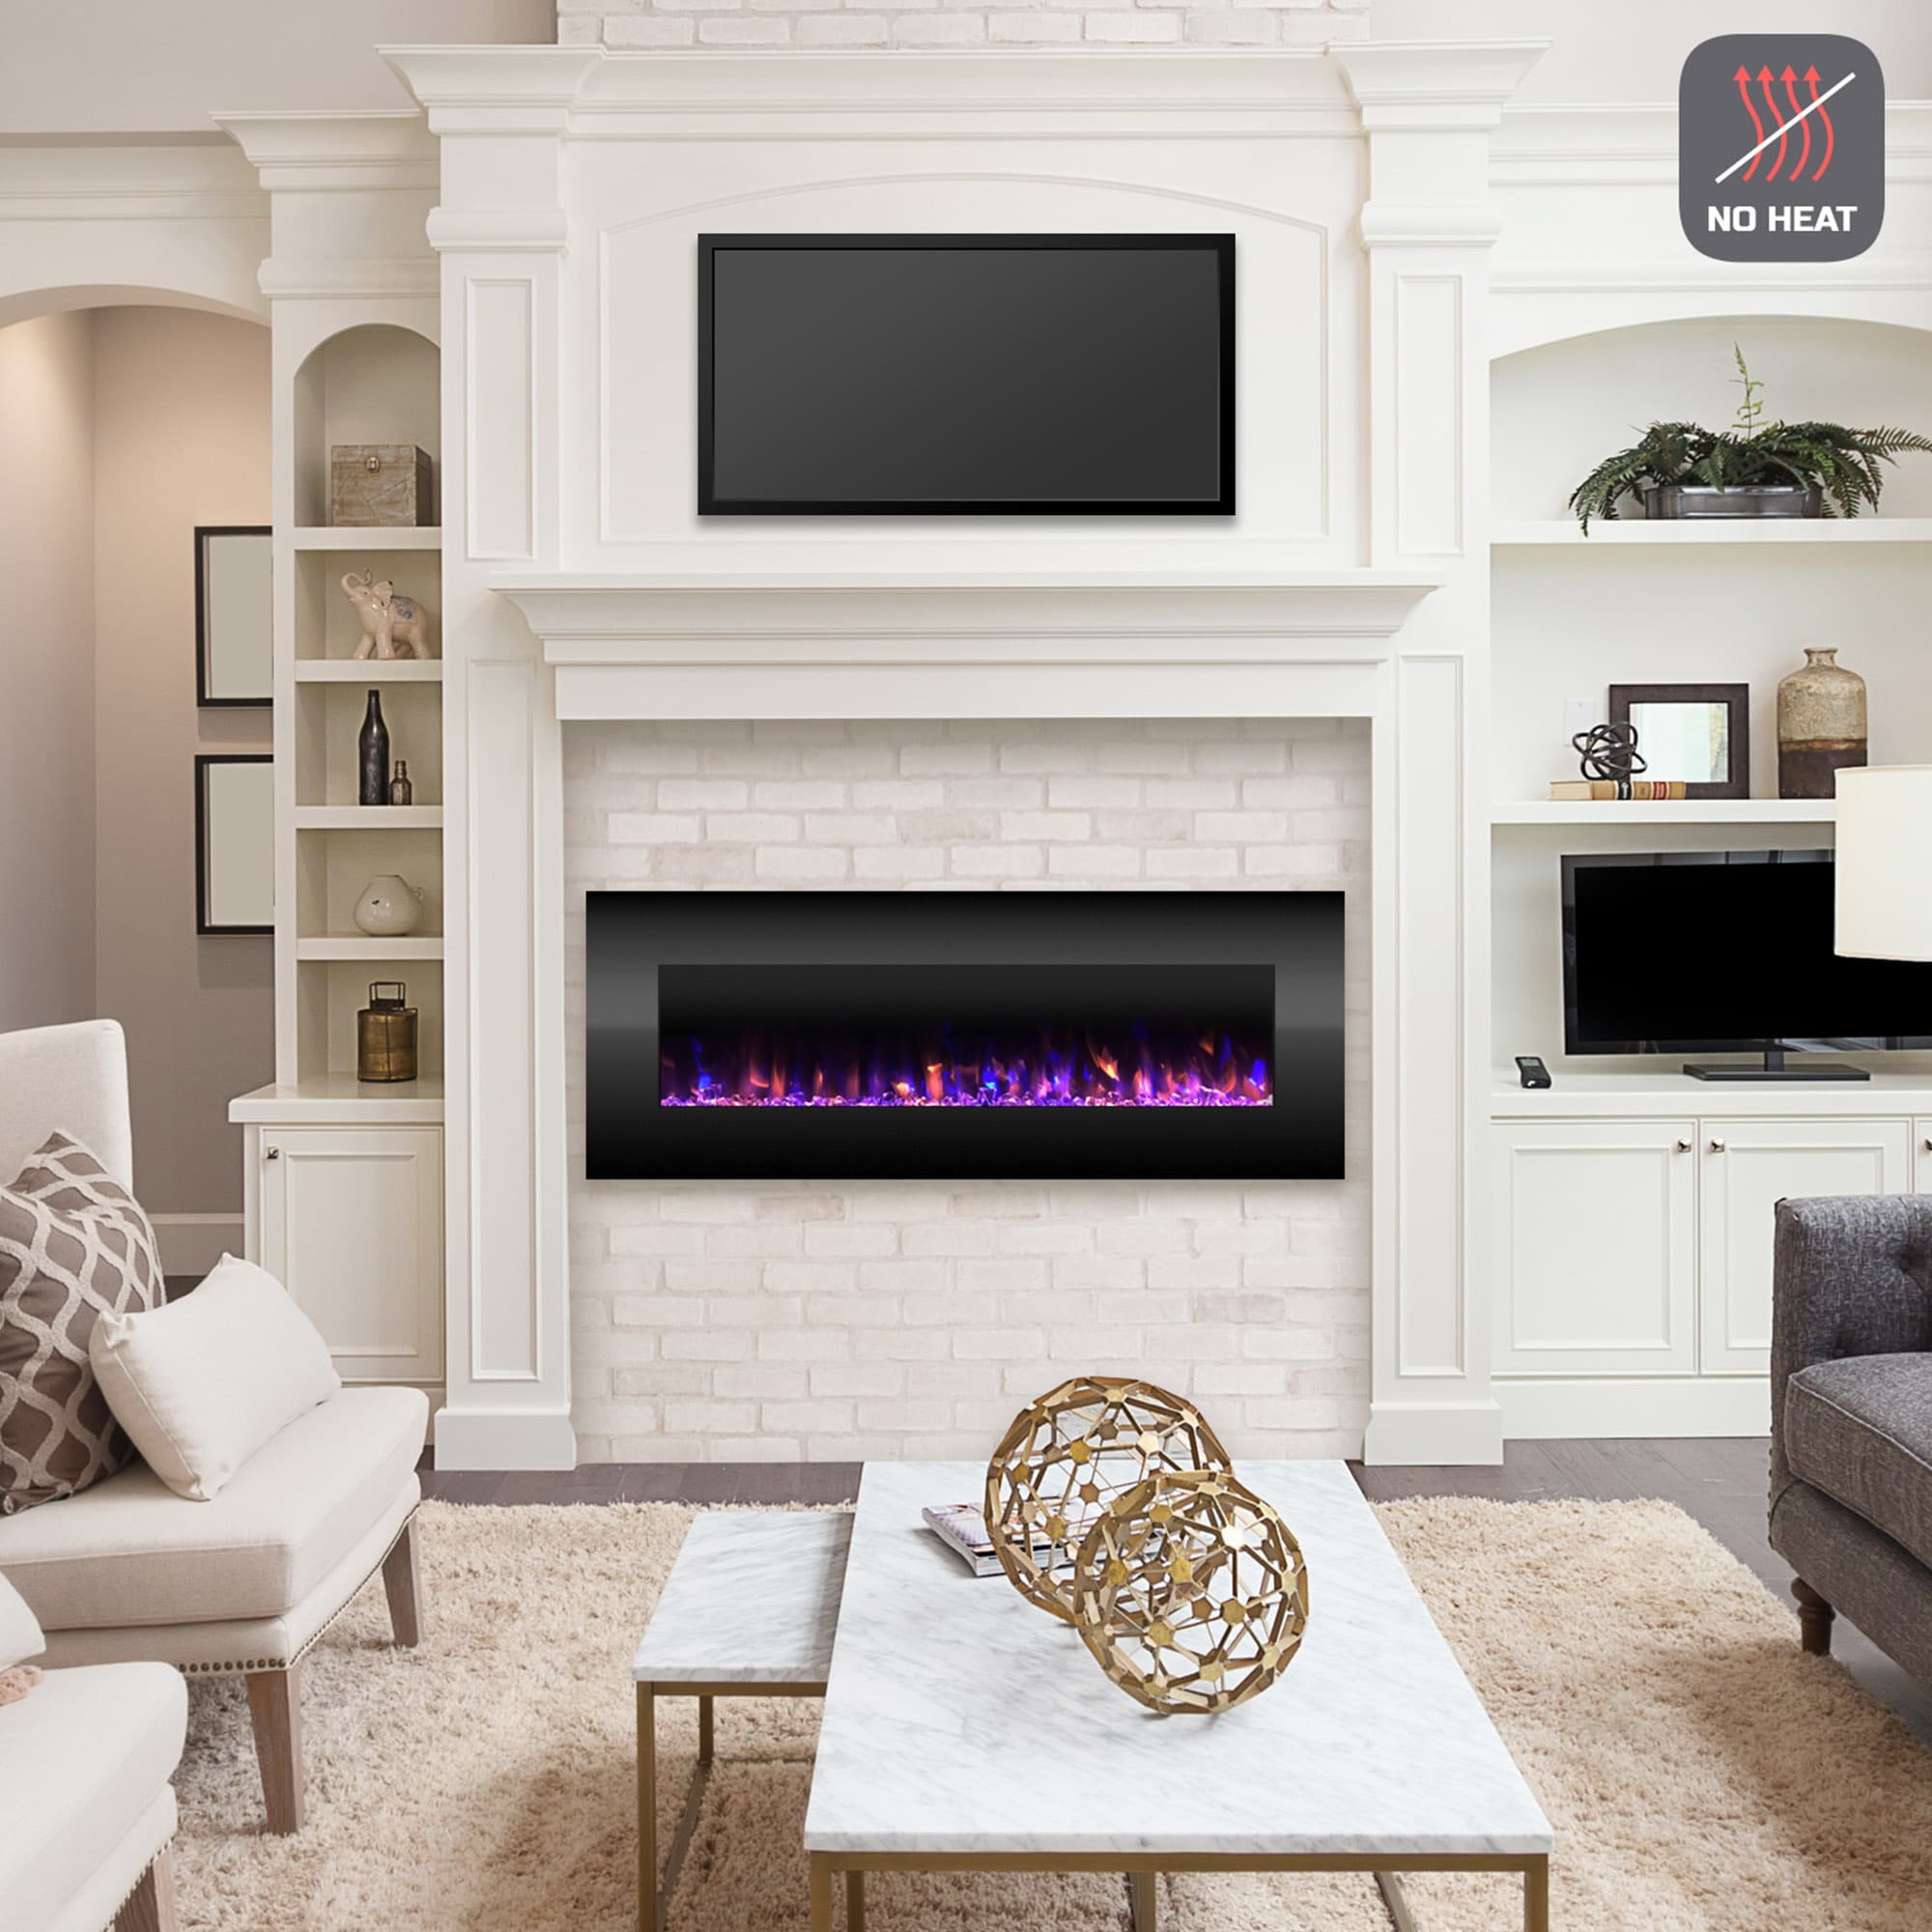 Electric Fireplace Built Into Wall Electric Fireplace Wall Mounted Color Changing Led Fire And Ice Flames No Heat Remote Control 54 Inch By Northwest